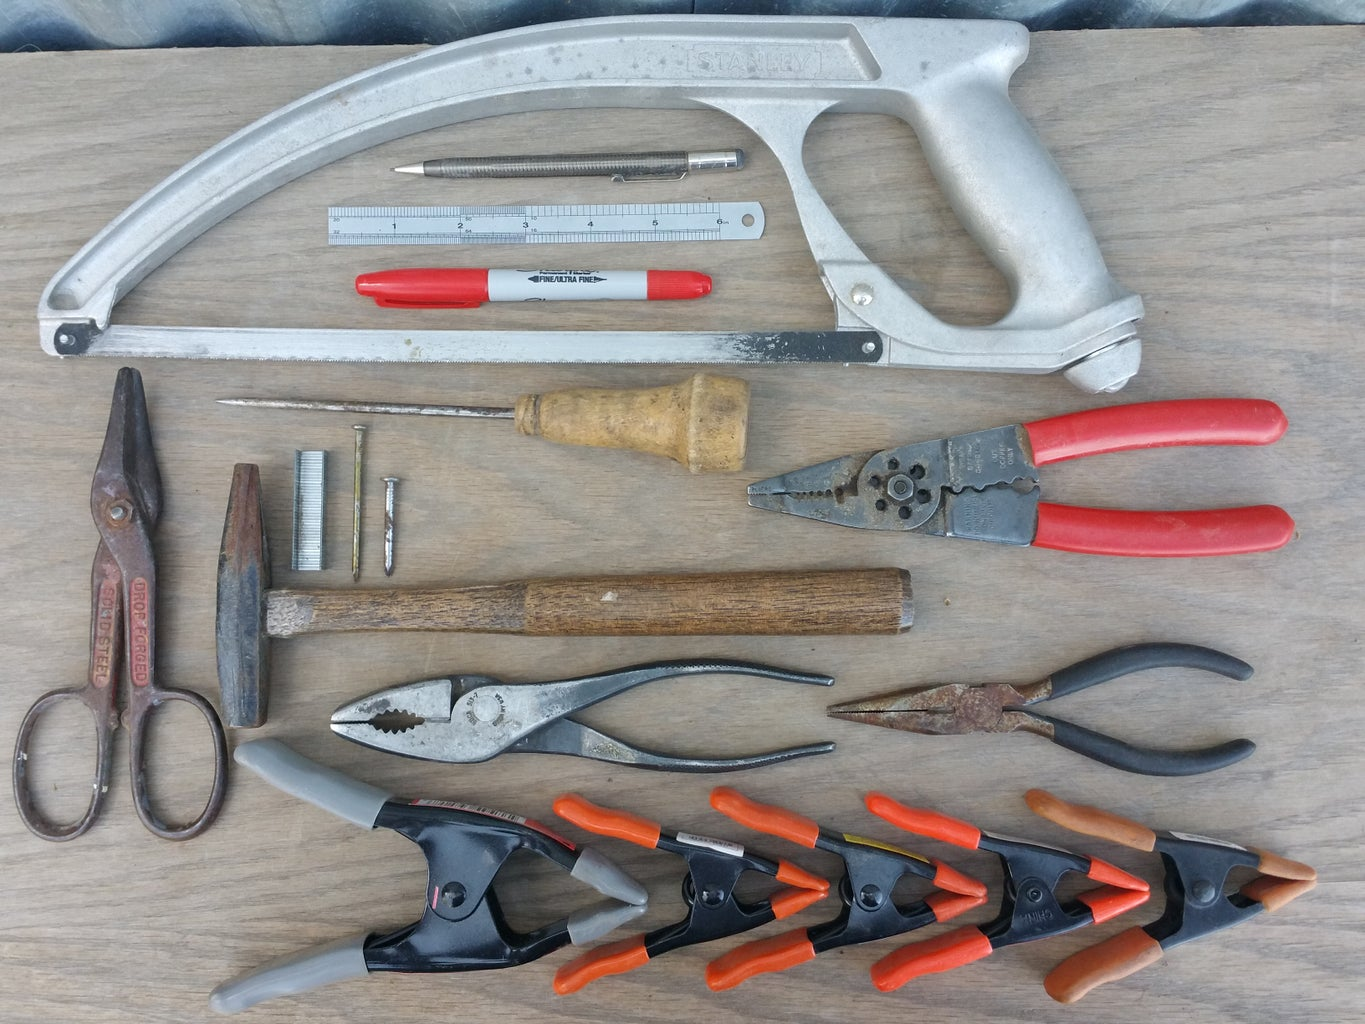 Getting Started: Tools and Materials.